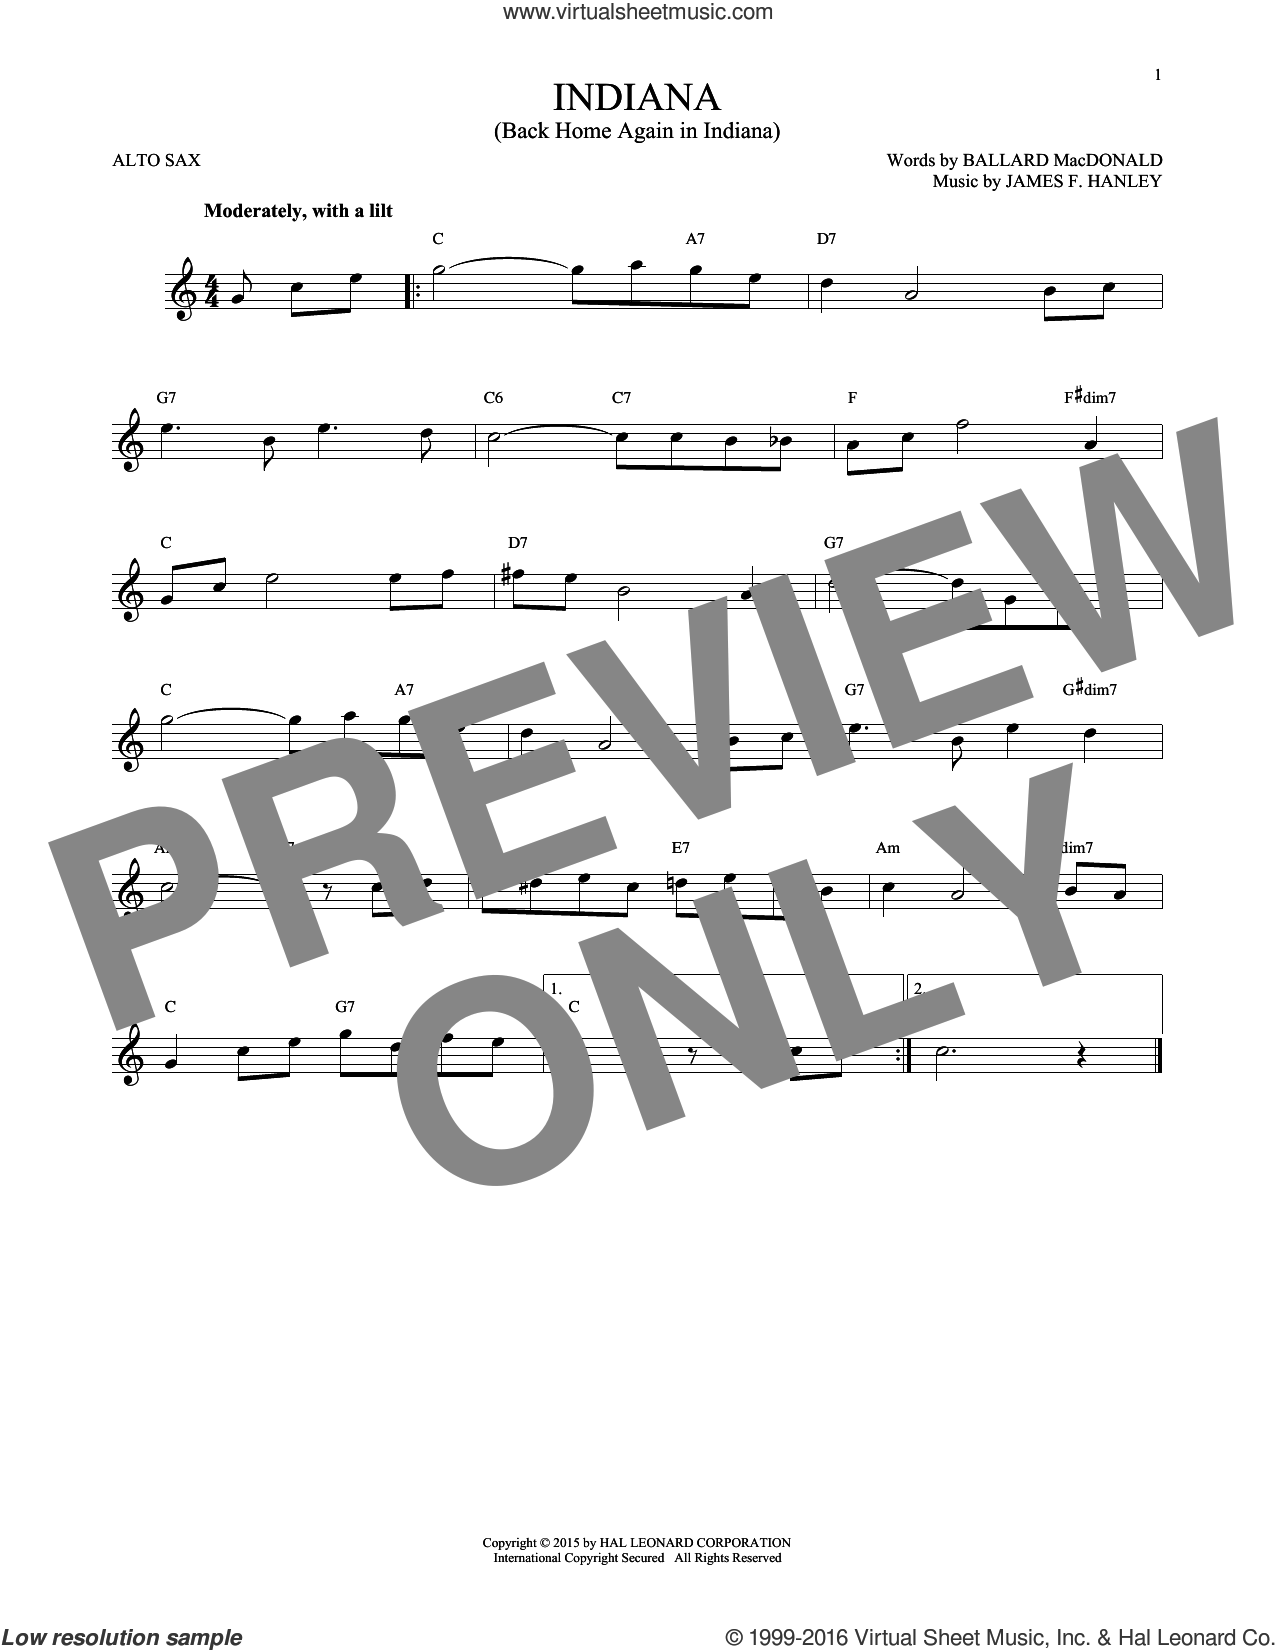 Indiana (Back Home Again In Indiana) sheet music for alto saxophone solo by Ballard MacDonald and James Hanley, intermediate skill level